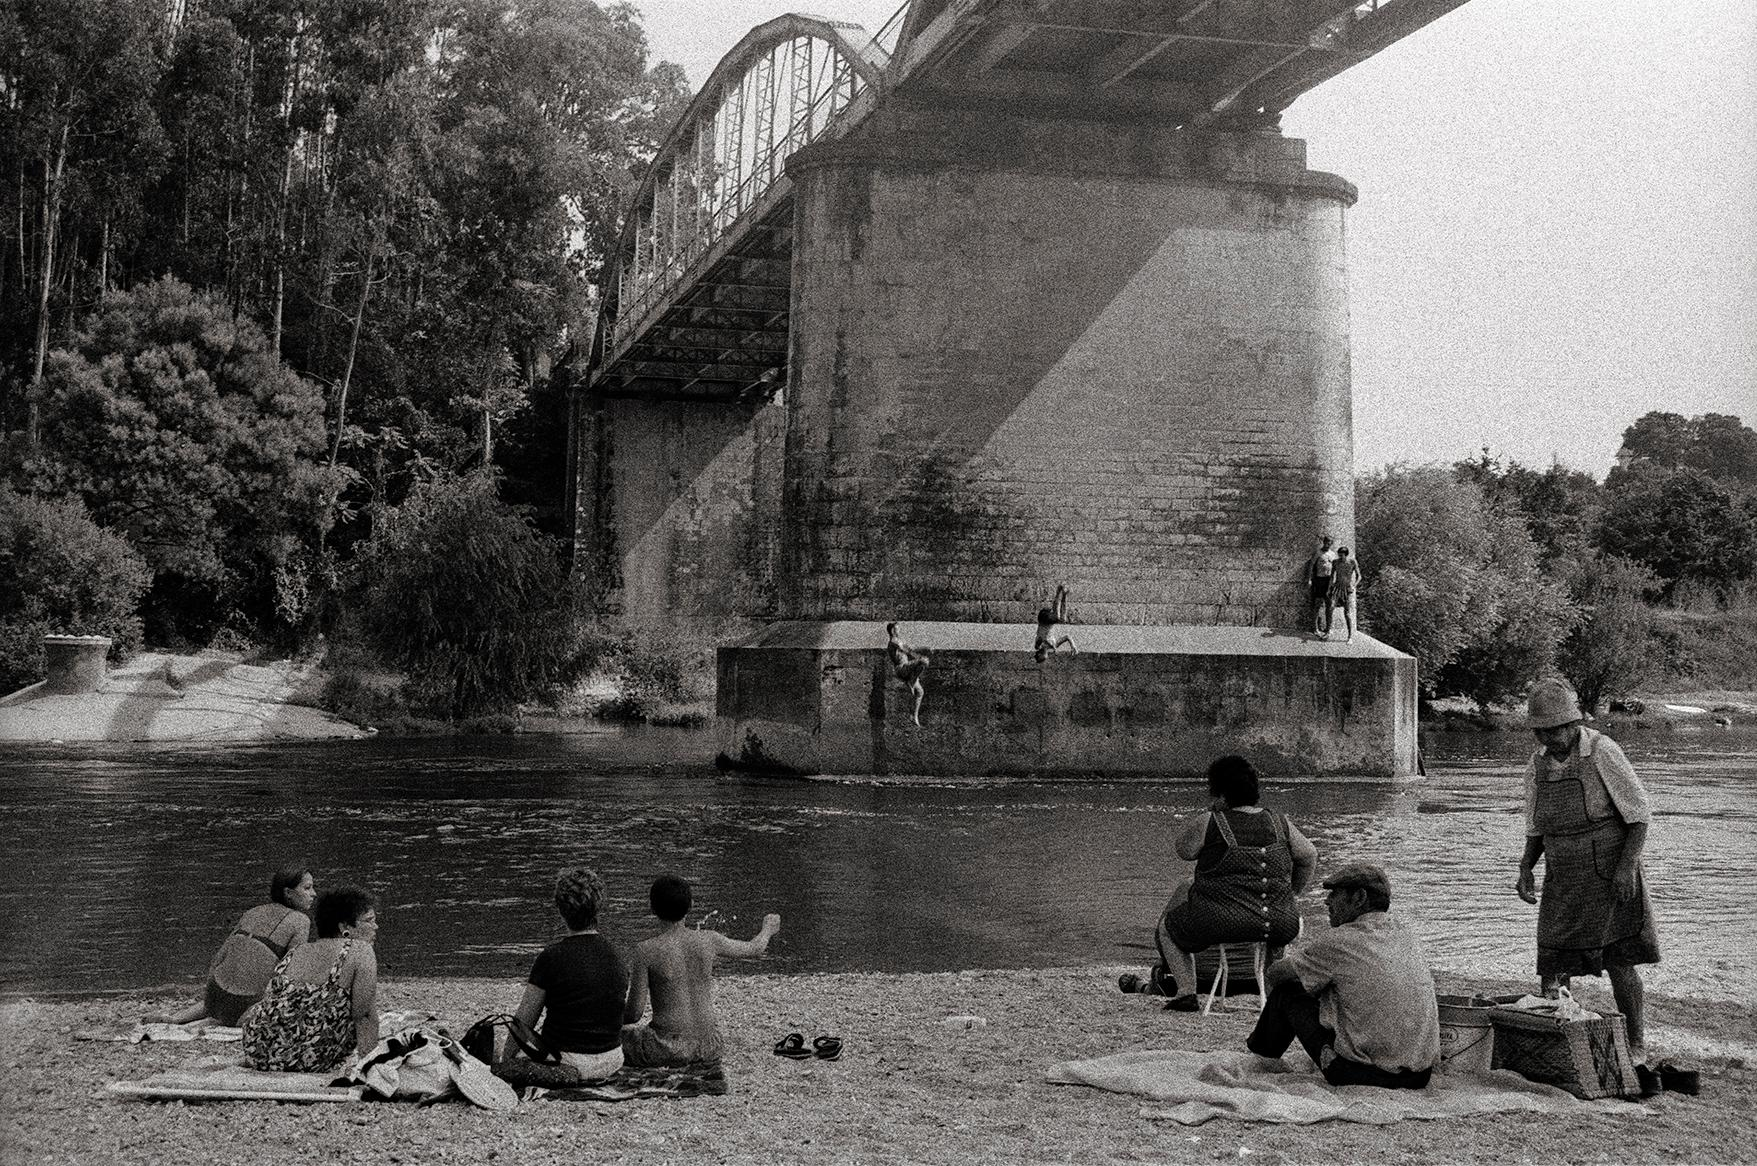 River Jumping - Portugal 2000 - Gelatin Silver Print - Signed